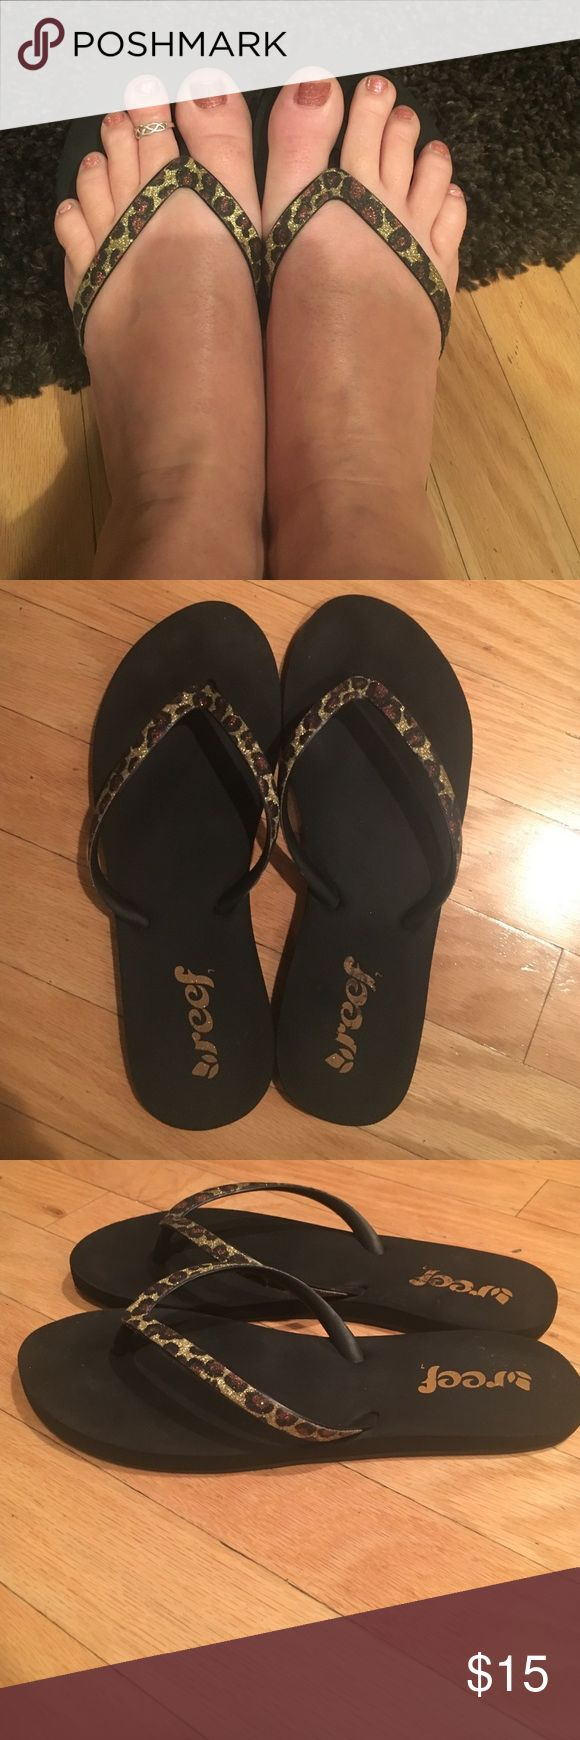 Women's Reef flip flops size 8 Super cute,leopard,glitter detail,Great shape,no flaws.Size 8 Reef Shoes Sandals